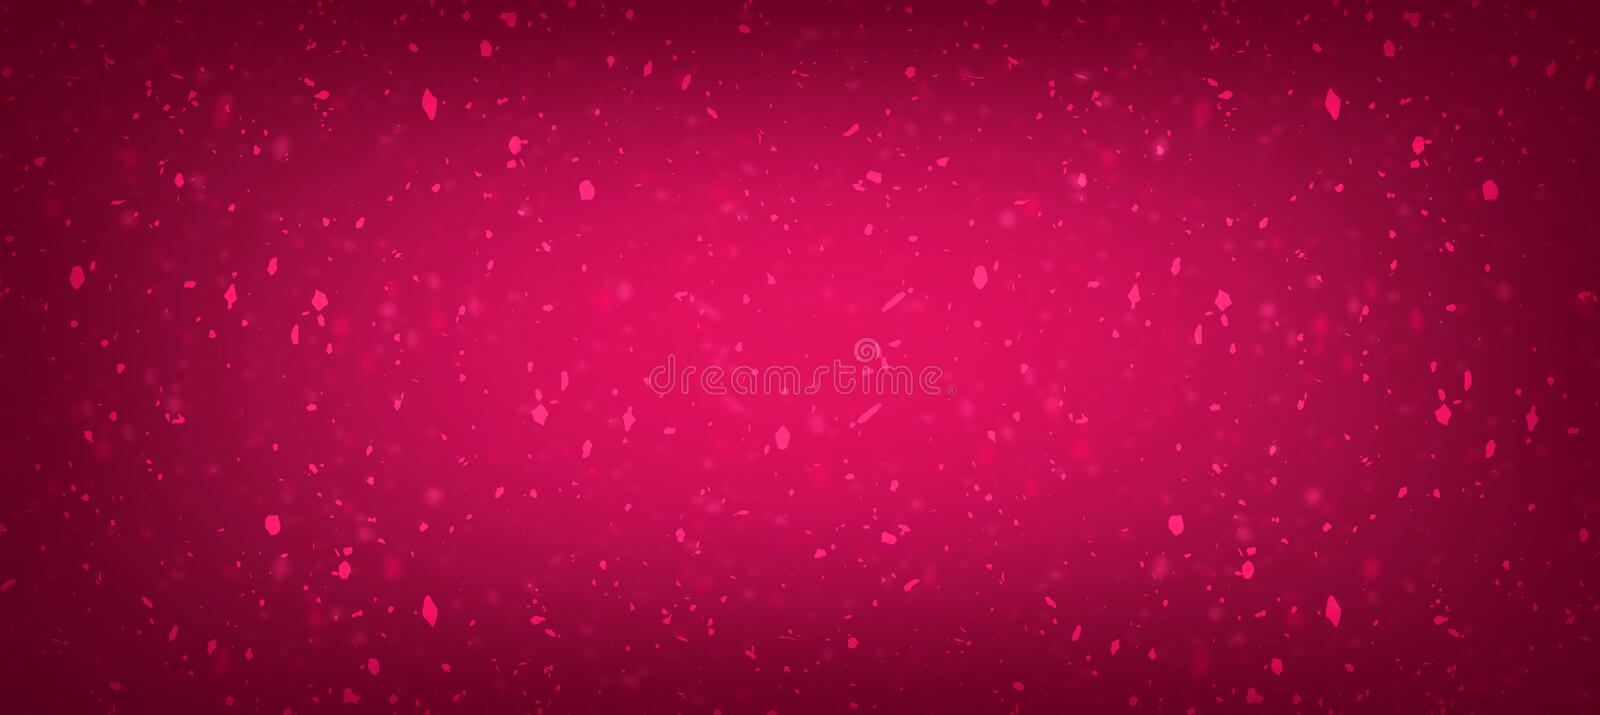 Pink best cinematic gilter effects with Dust picture in gradient for website creation vector illustration